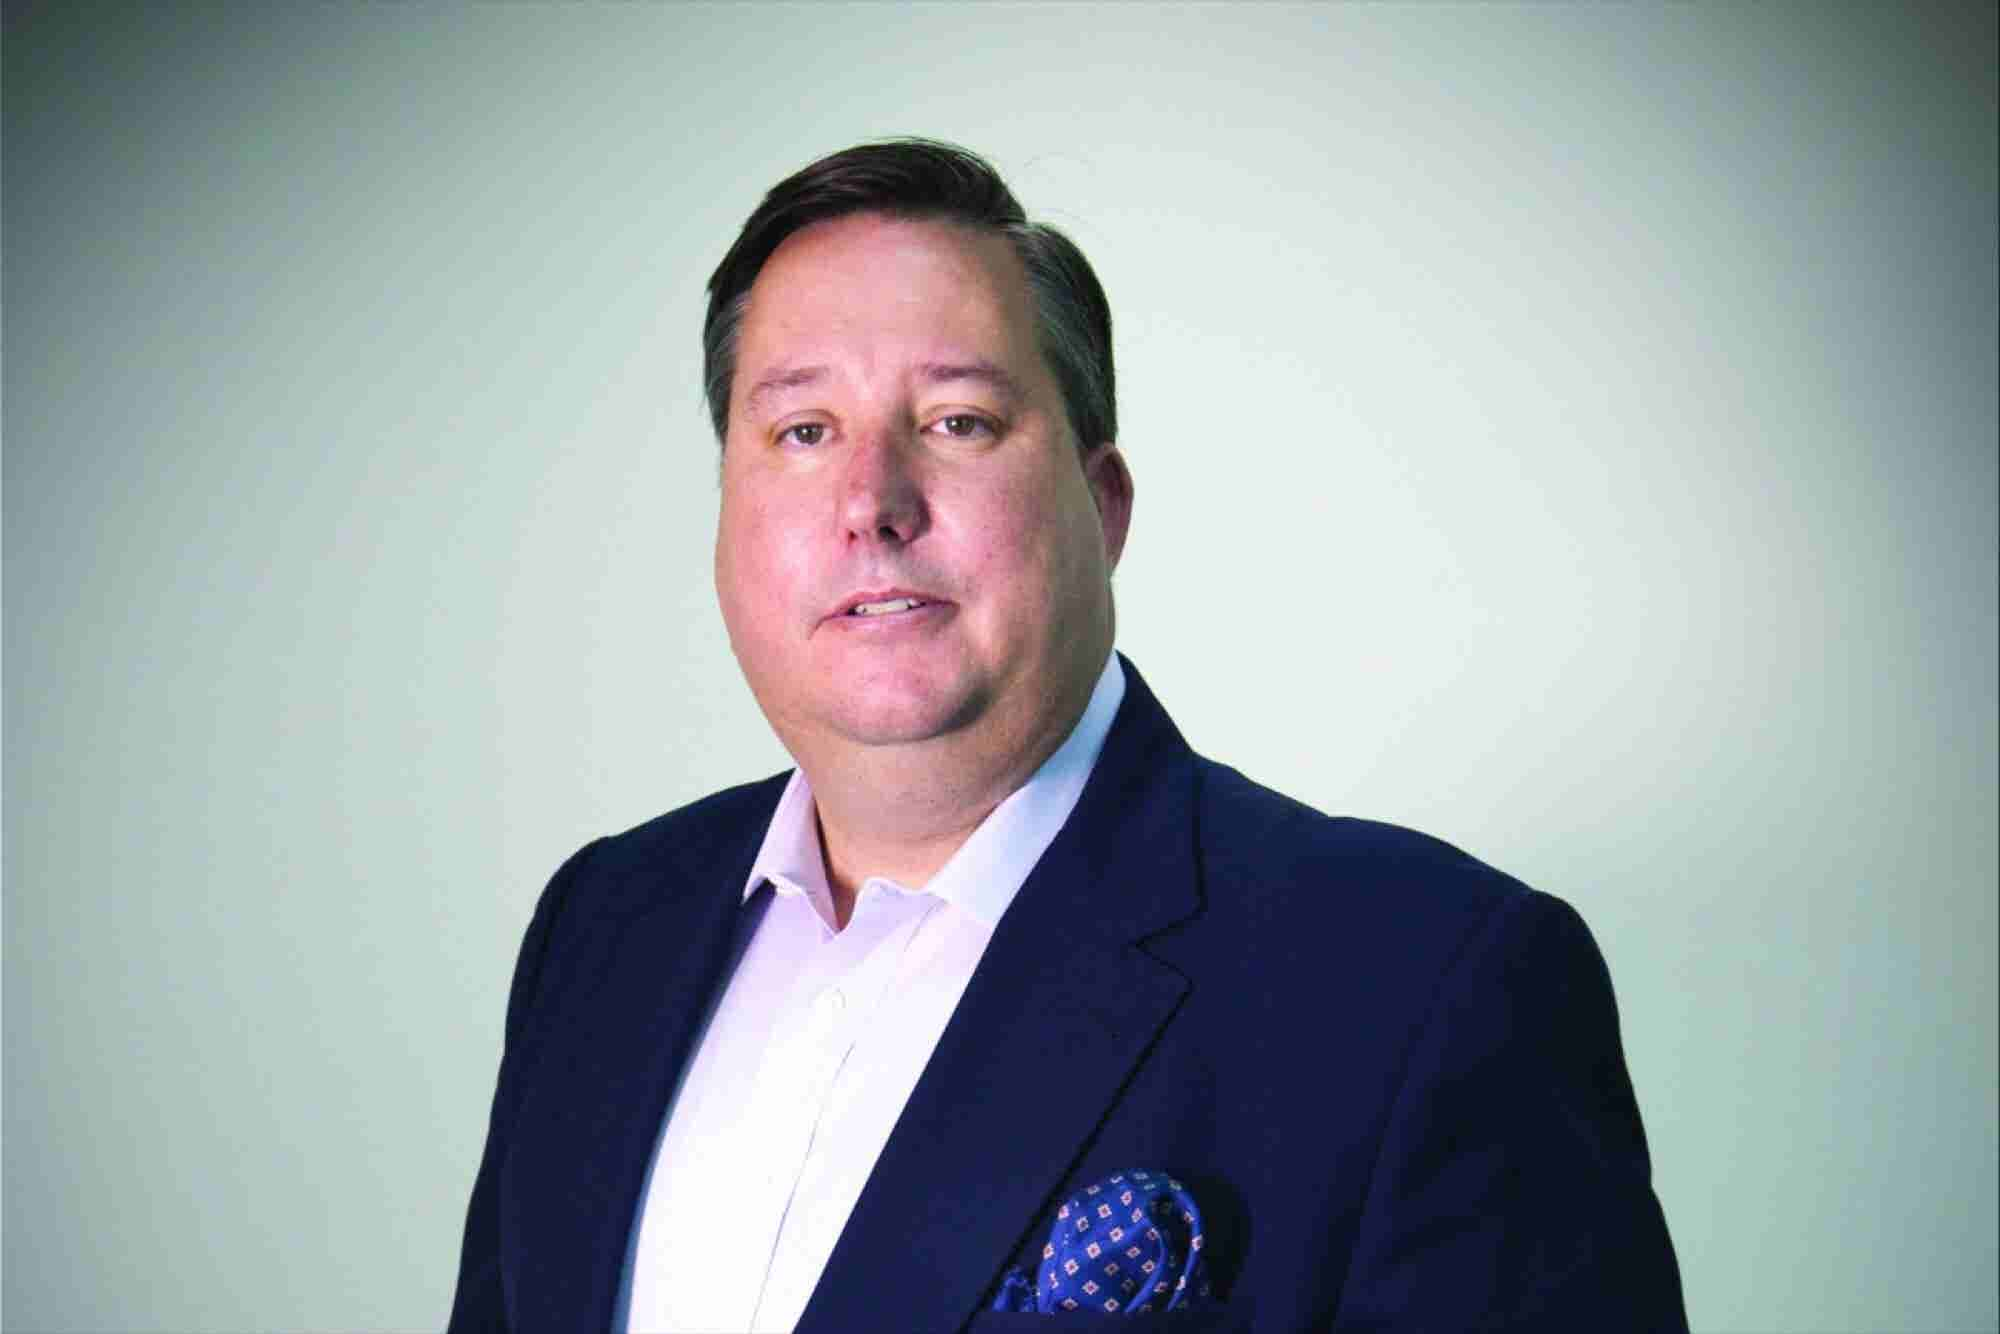 Taking The Lead: Daruna Development CEO Michael Murphy